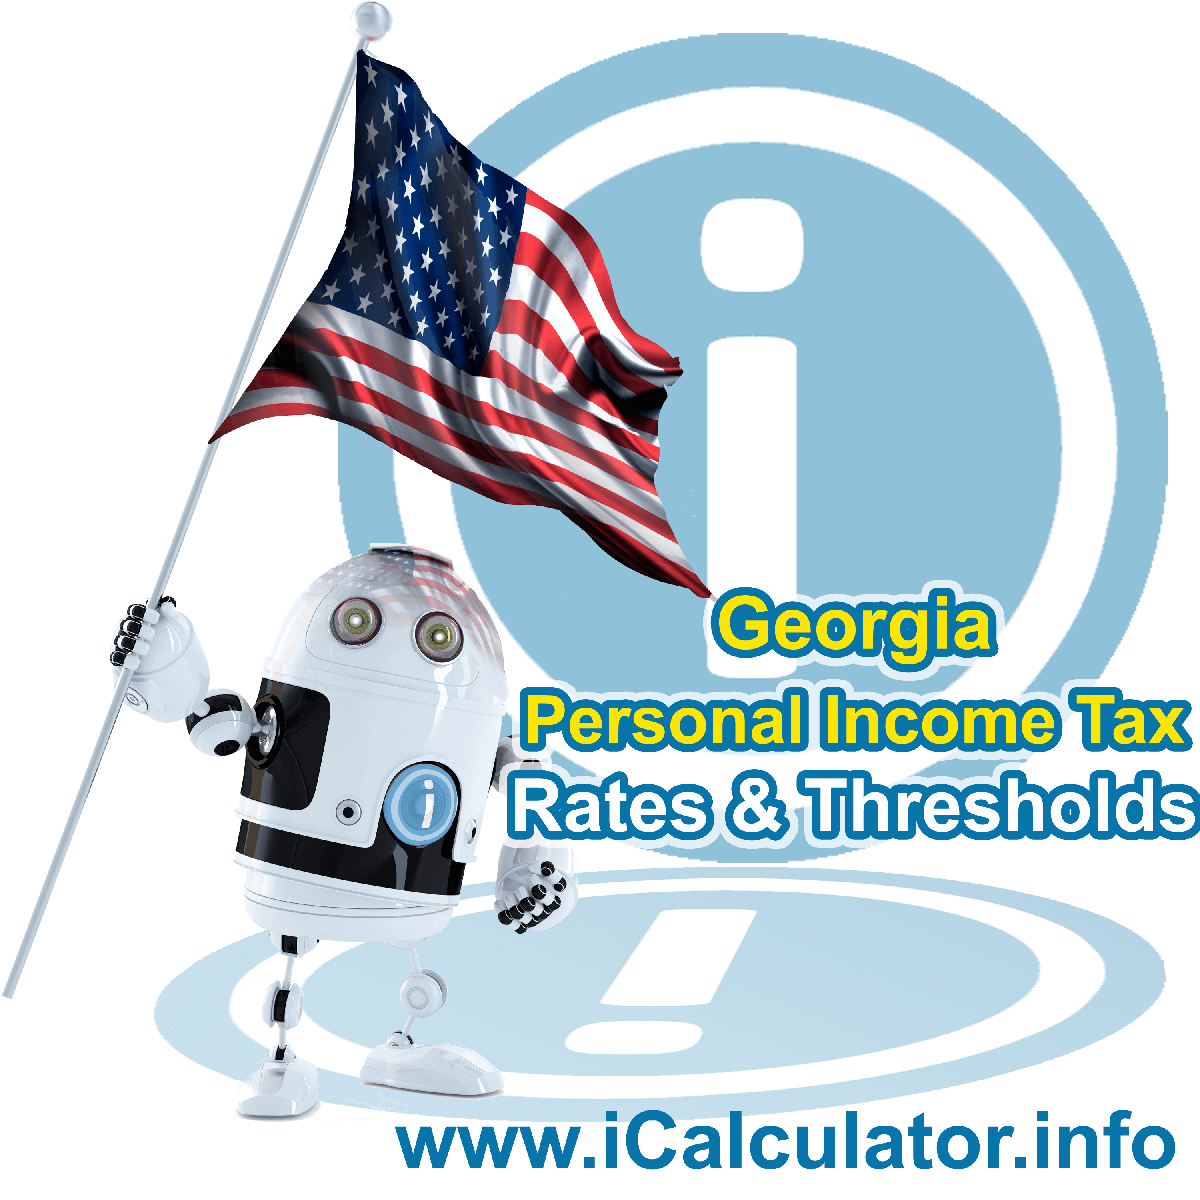 Georgia State Tax Tables 2020. This image displays details of the Georgia State Tax Tables for the 2020 tax return year which is provided in support of the 2020 US Tax Calculator